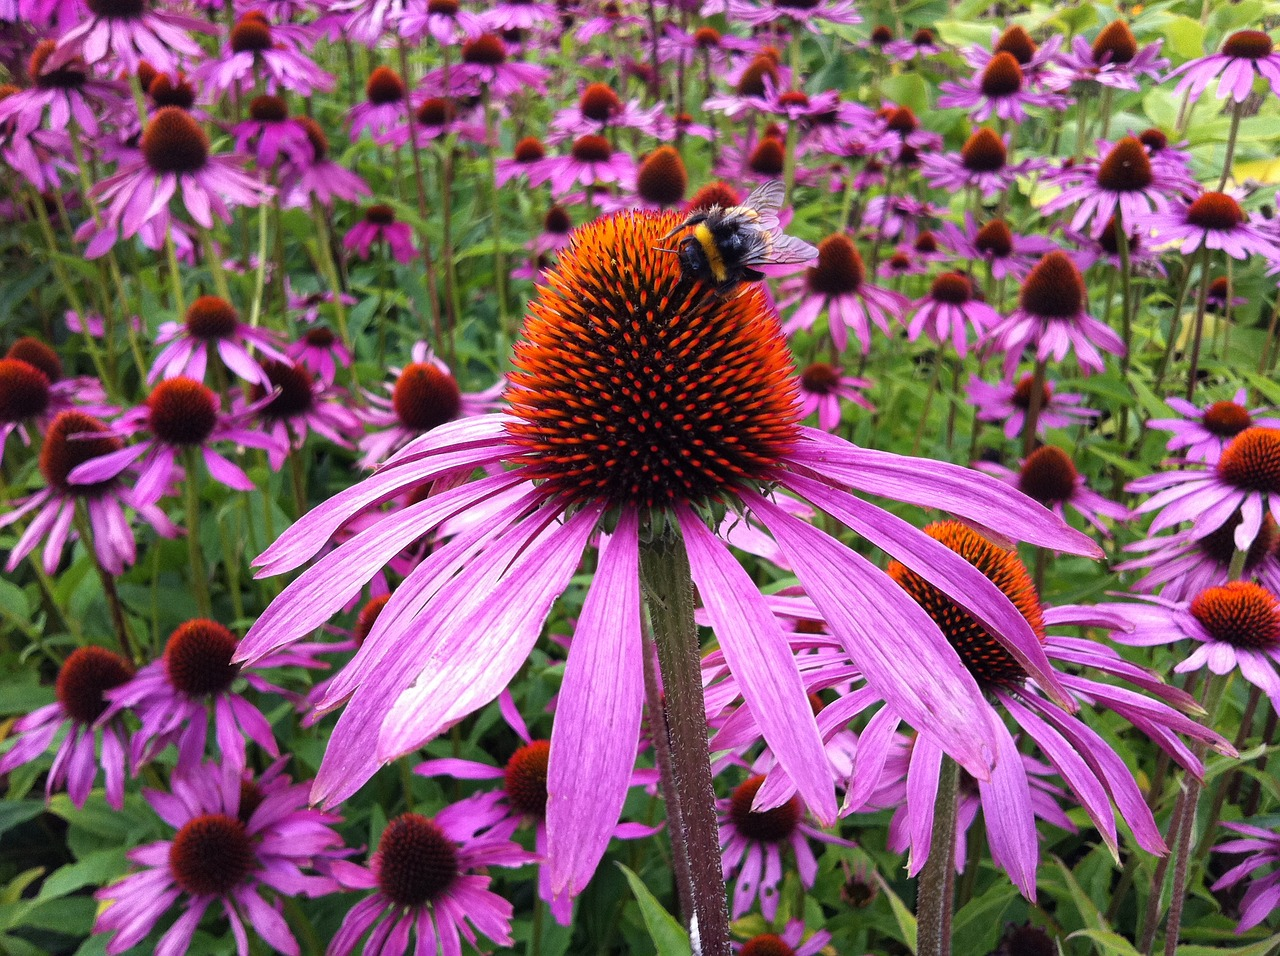 Echinacea Benefits: bee pollinating flower